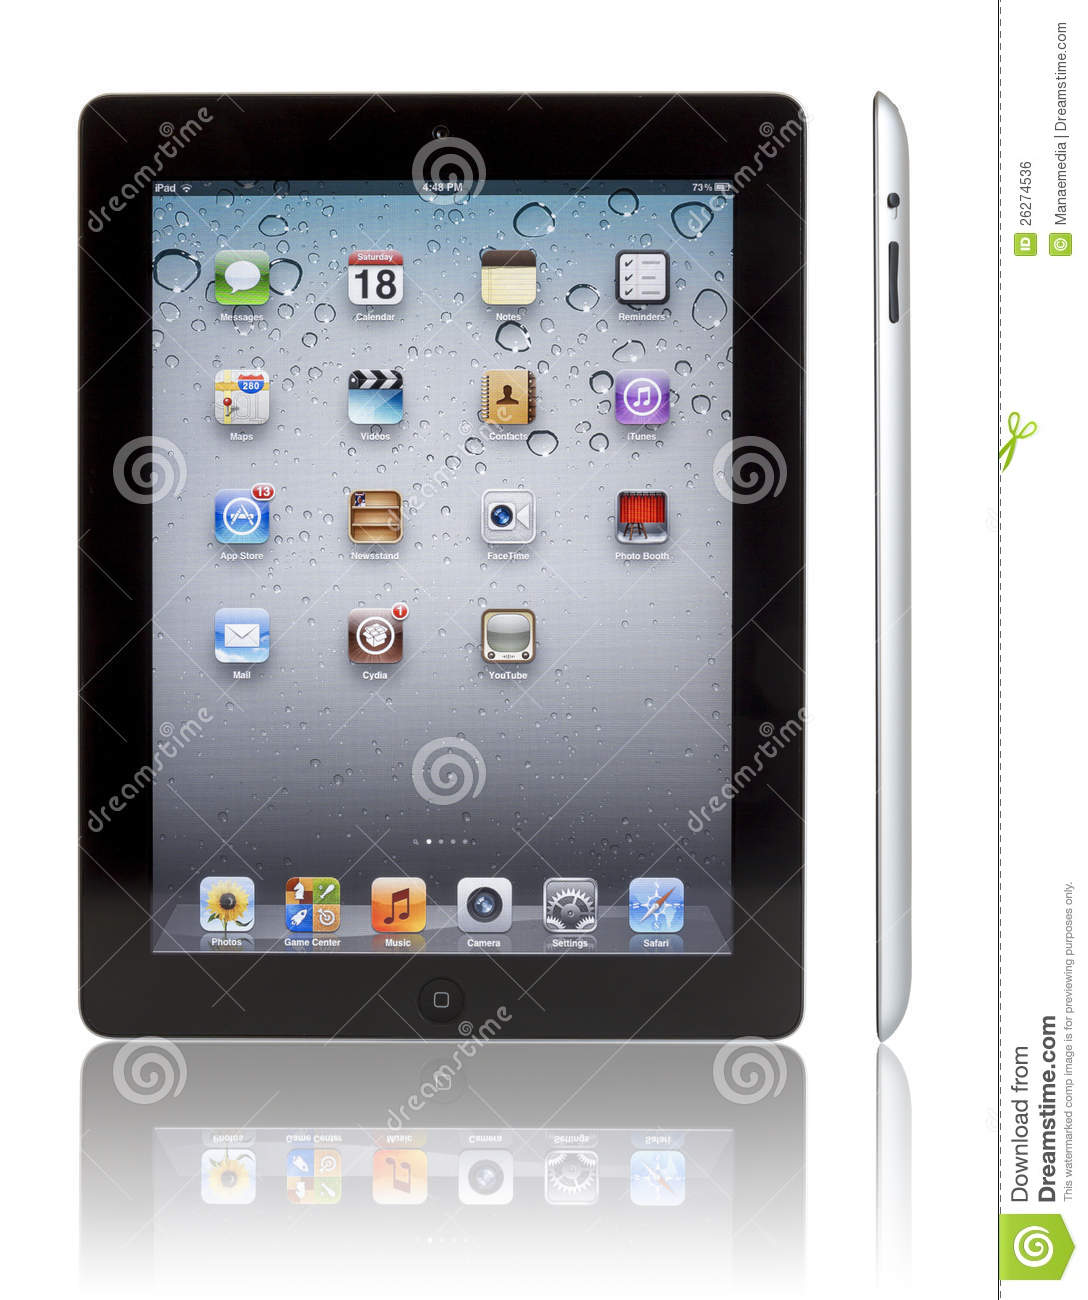 IPad 3 de Apple